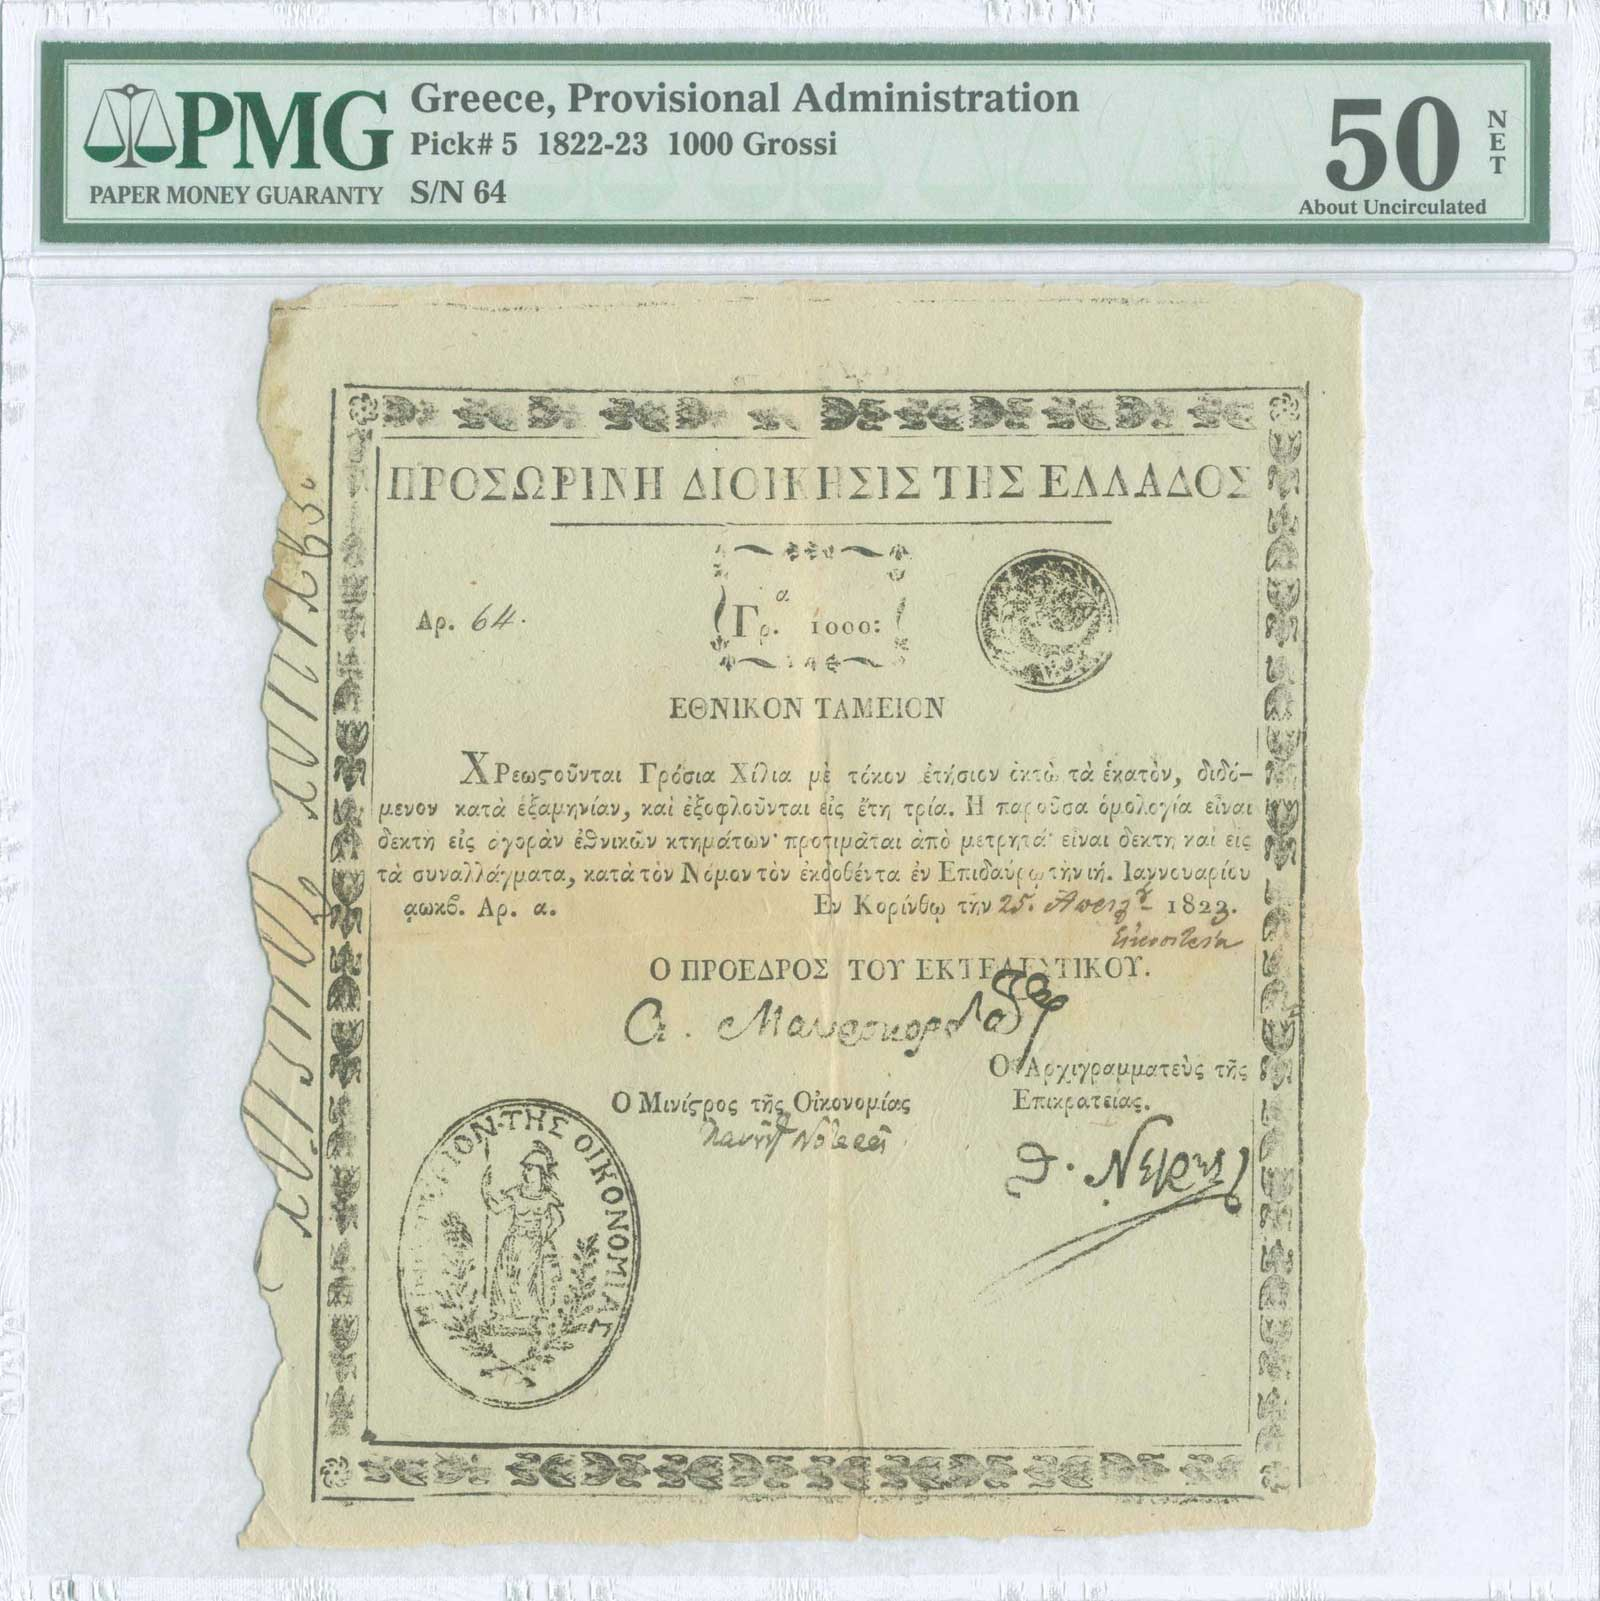 Lot 9276 - GREECE-  PAPER MONEY - BANKNOTES provisional administratrion of greece 1822 -  A. Karamitsos Public & LIVE Bid Auction 606 Coins, Medals & Banknotes